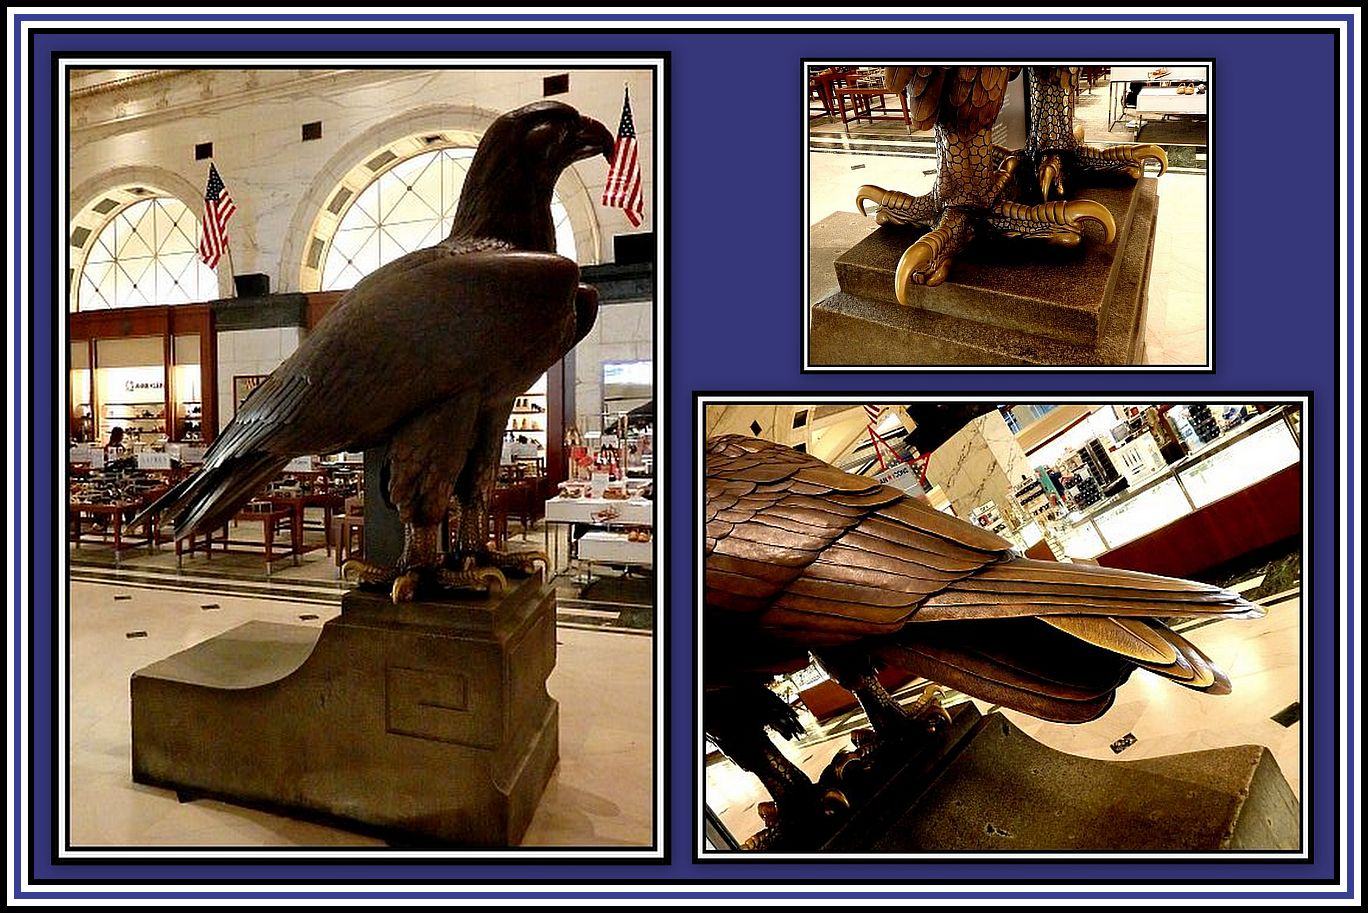 The Eagle Collage